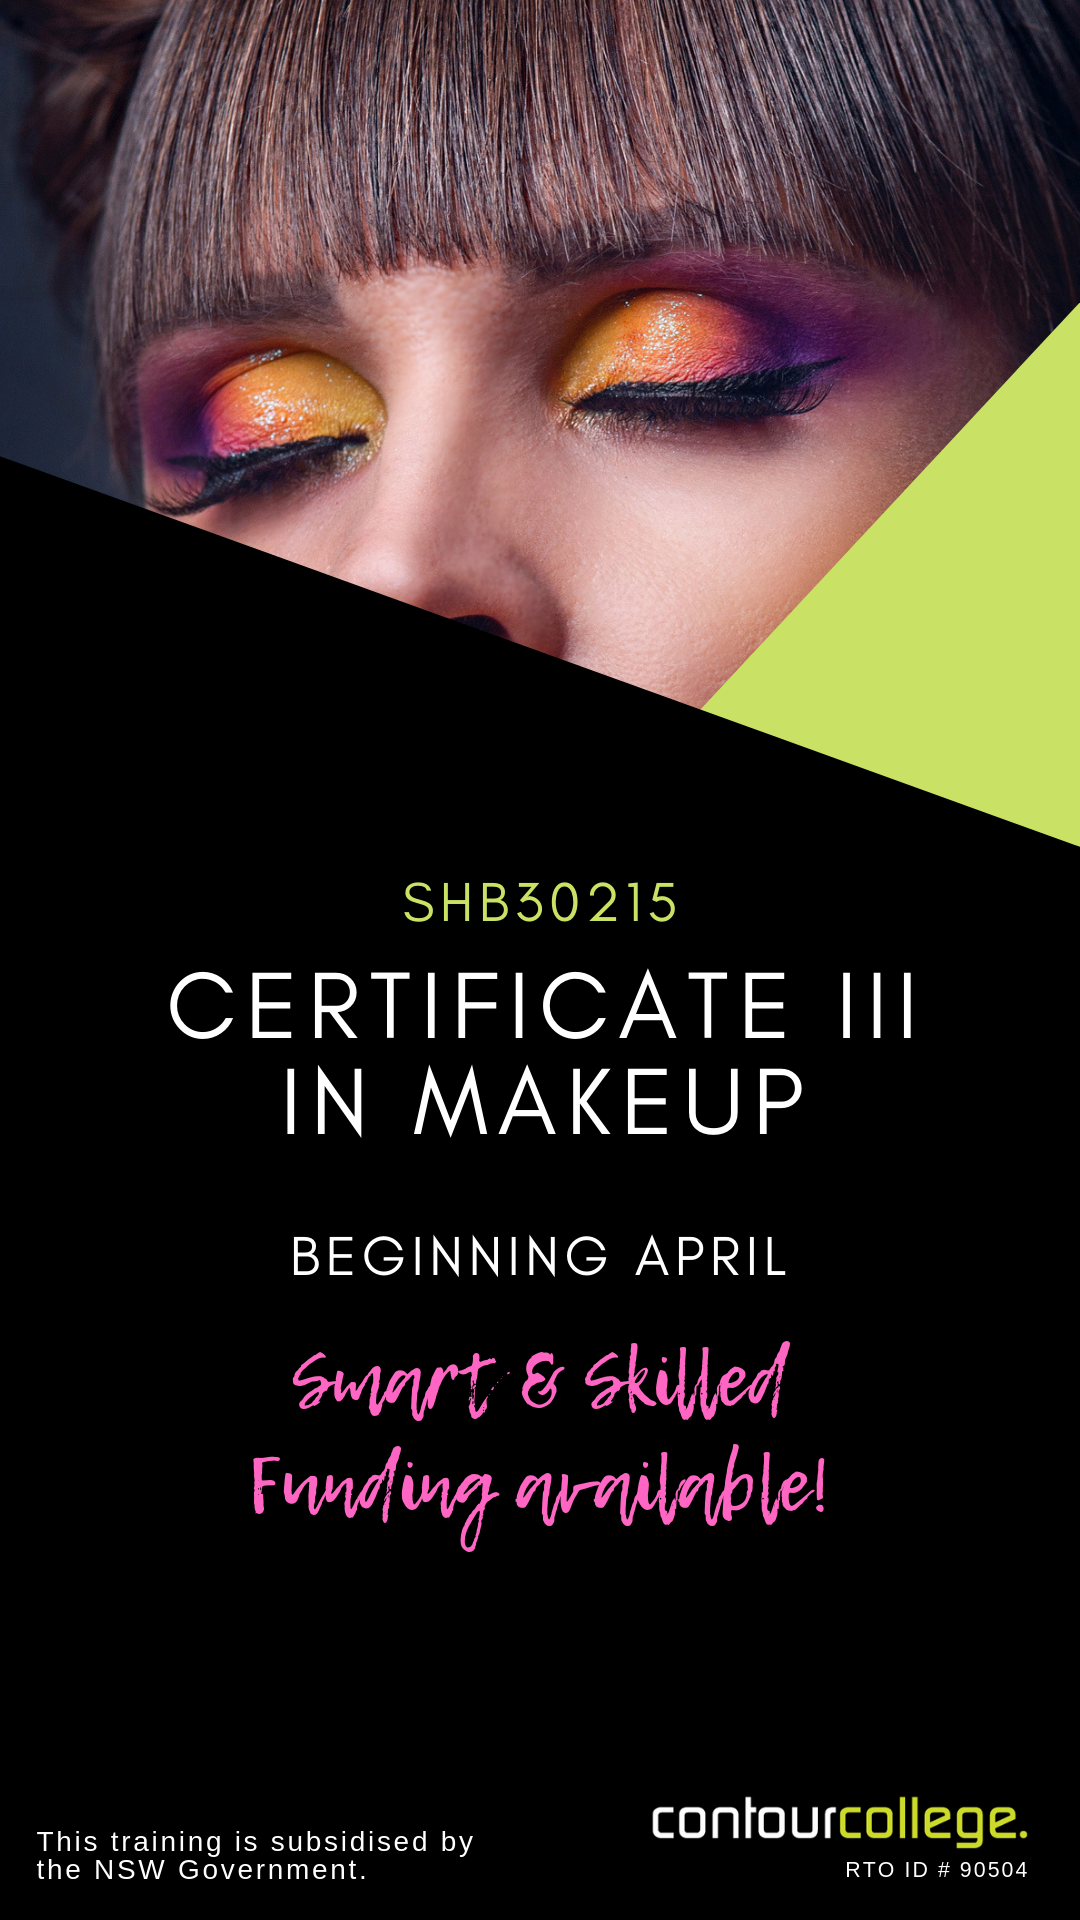 Dreaming Of A Career In Makeup Develop Your Makeup Skills At Contour College This Training Is Subsidised By The Nsw Gove Makeup Course Makeup Makeup Training